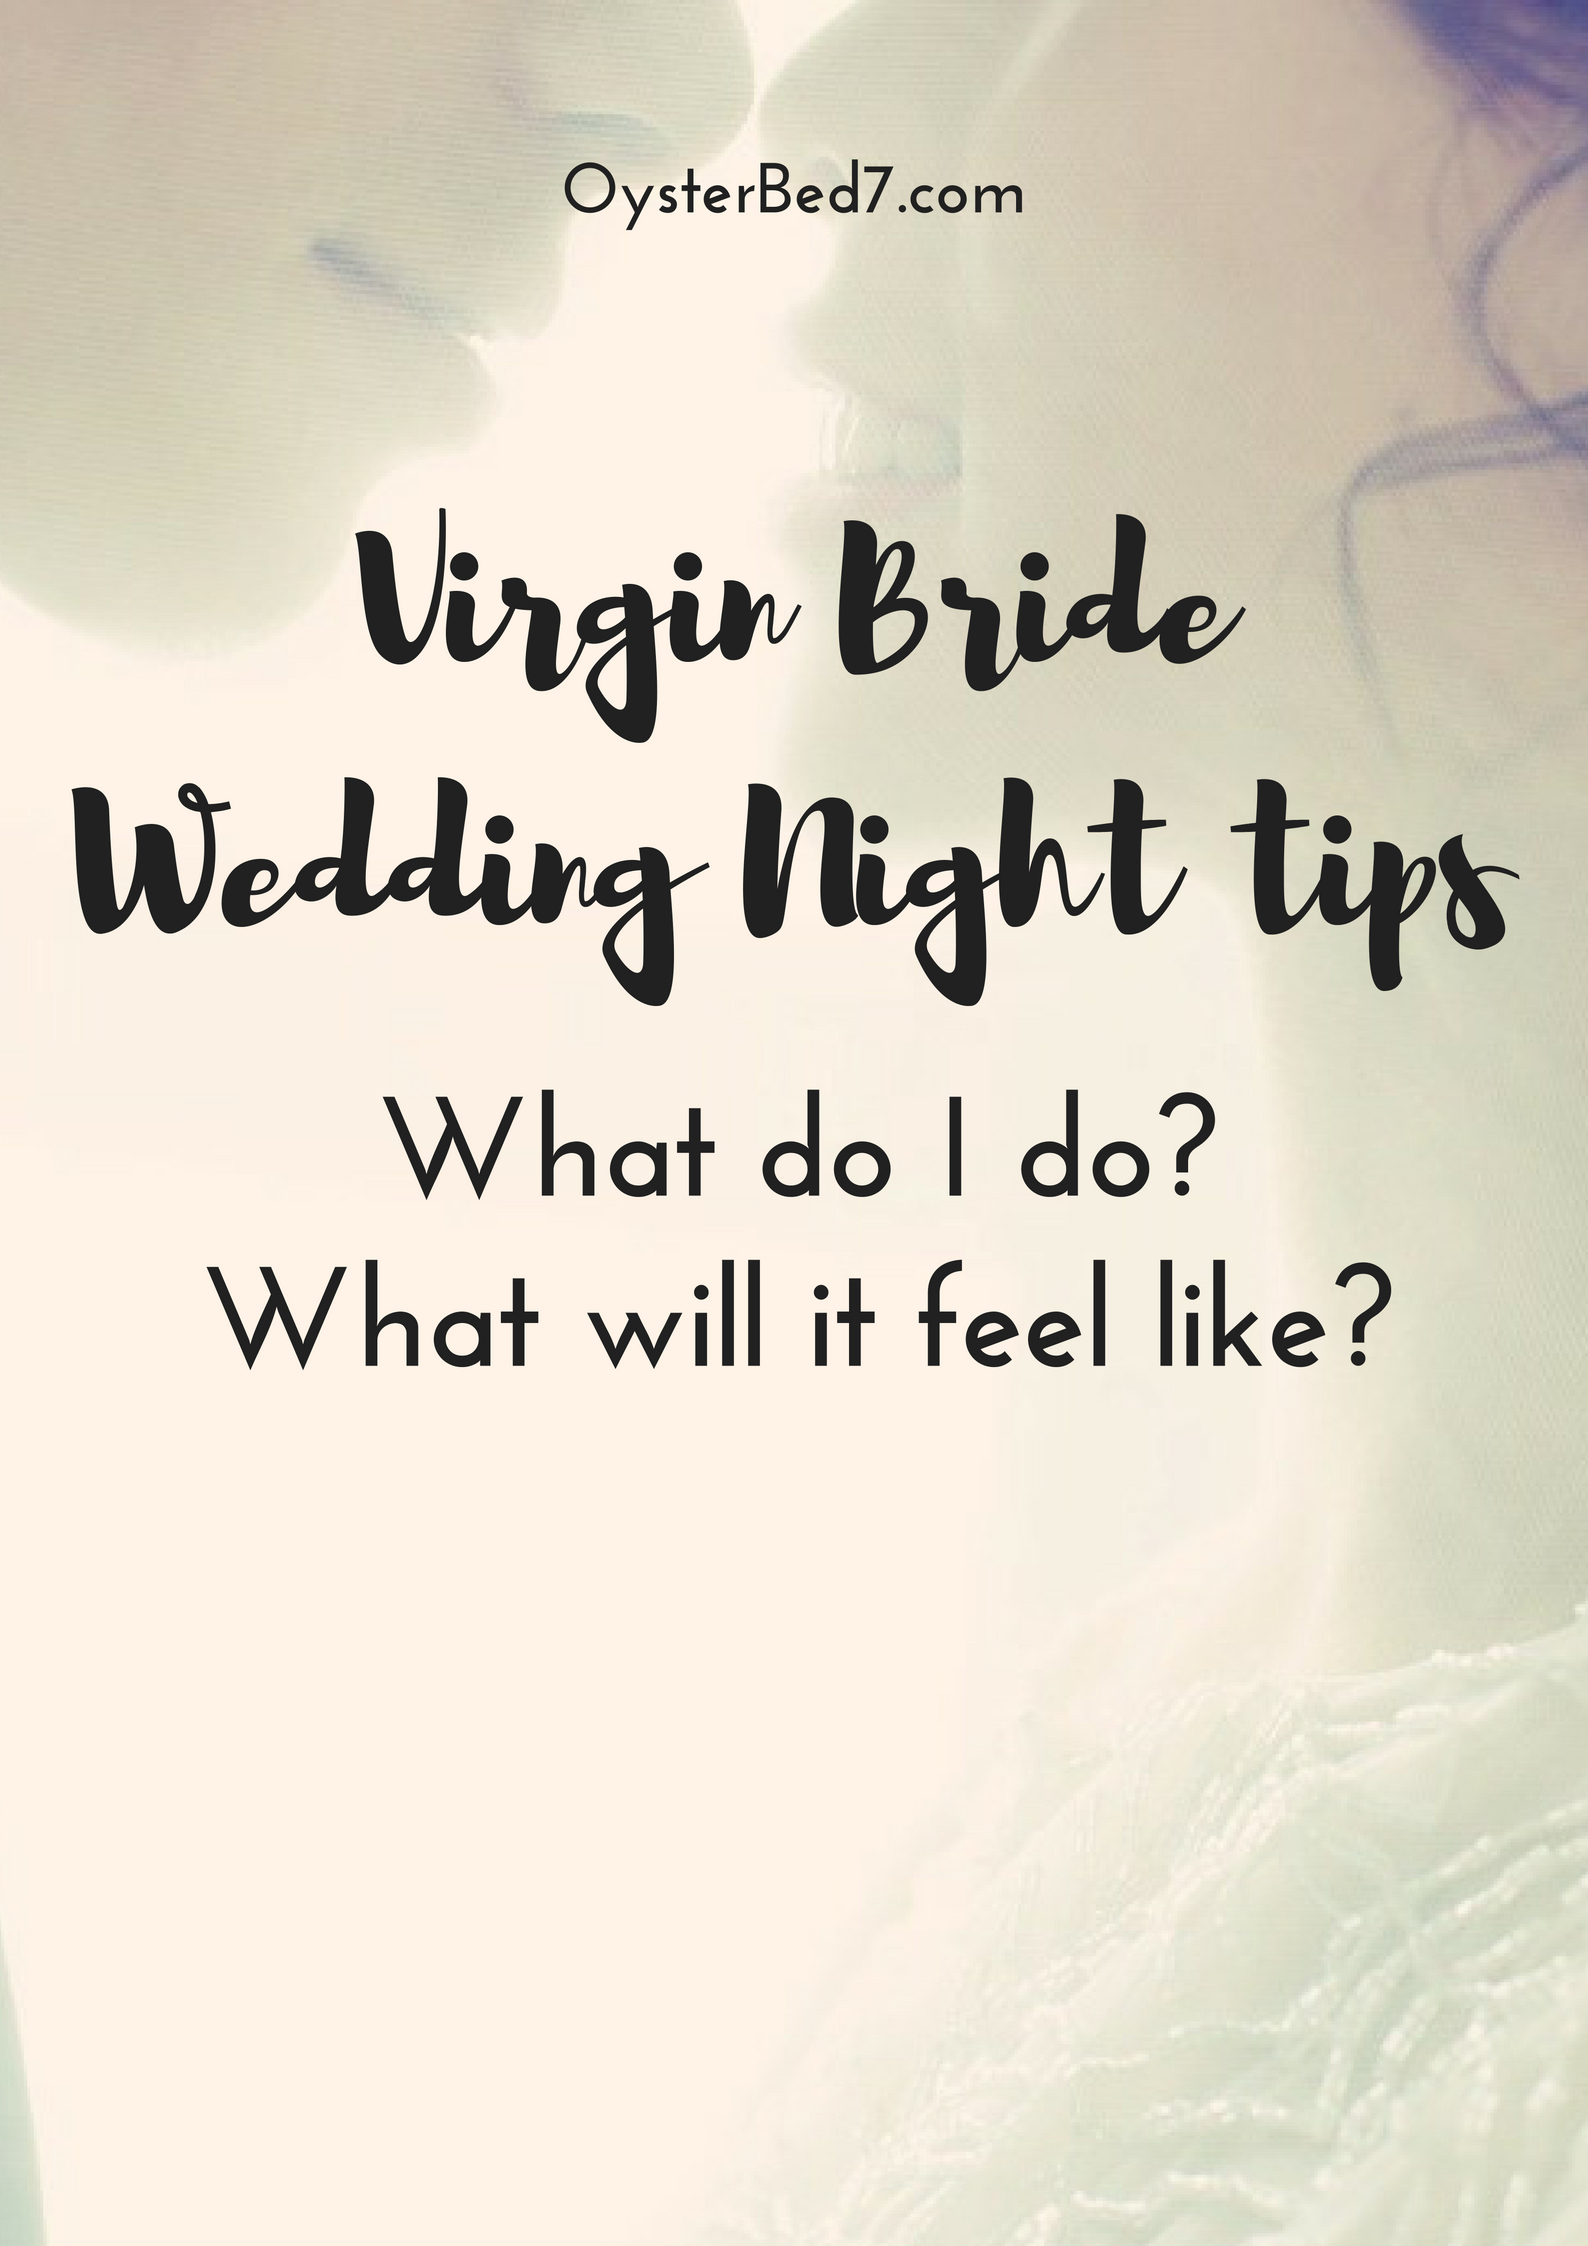 Missionary Position Diagram Virgin Bride Asks What Do I Do What Will It Feel Like